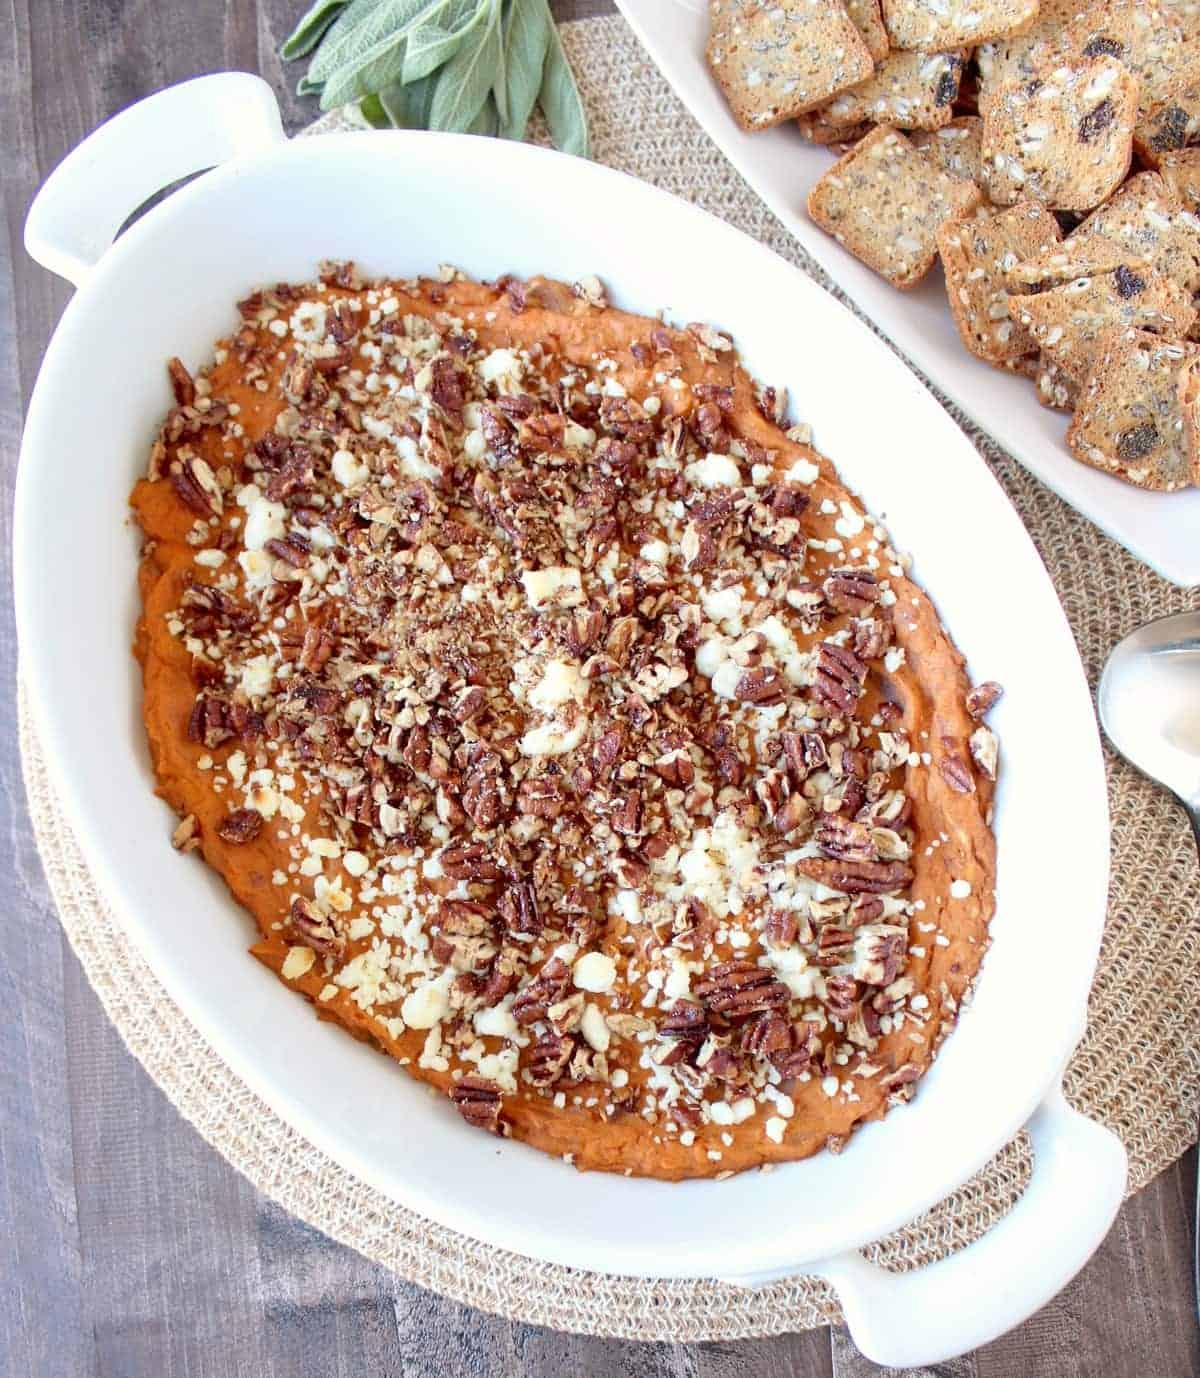 Baked Sweetpotato & Three Cheese Dip